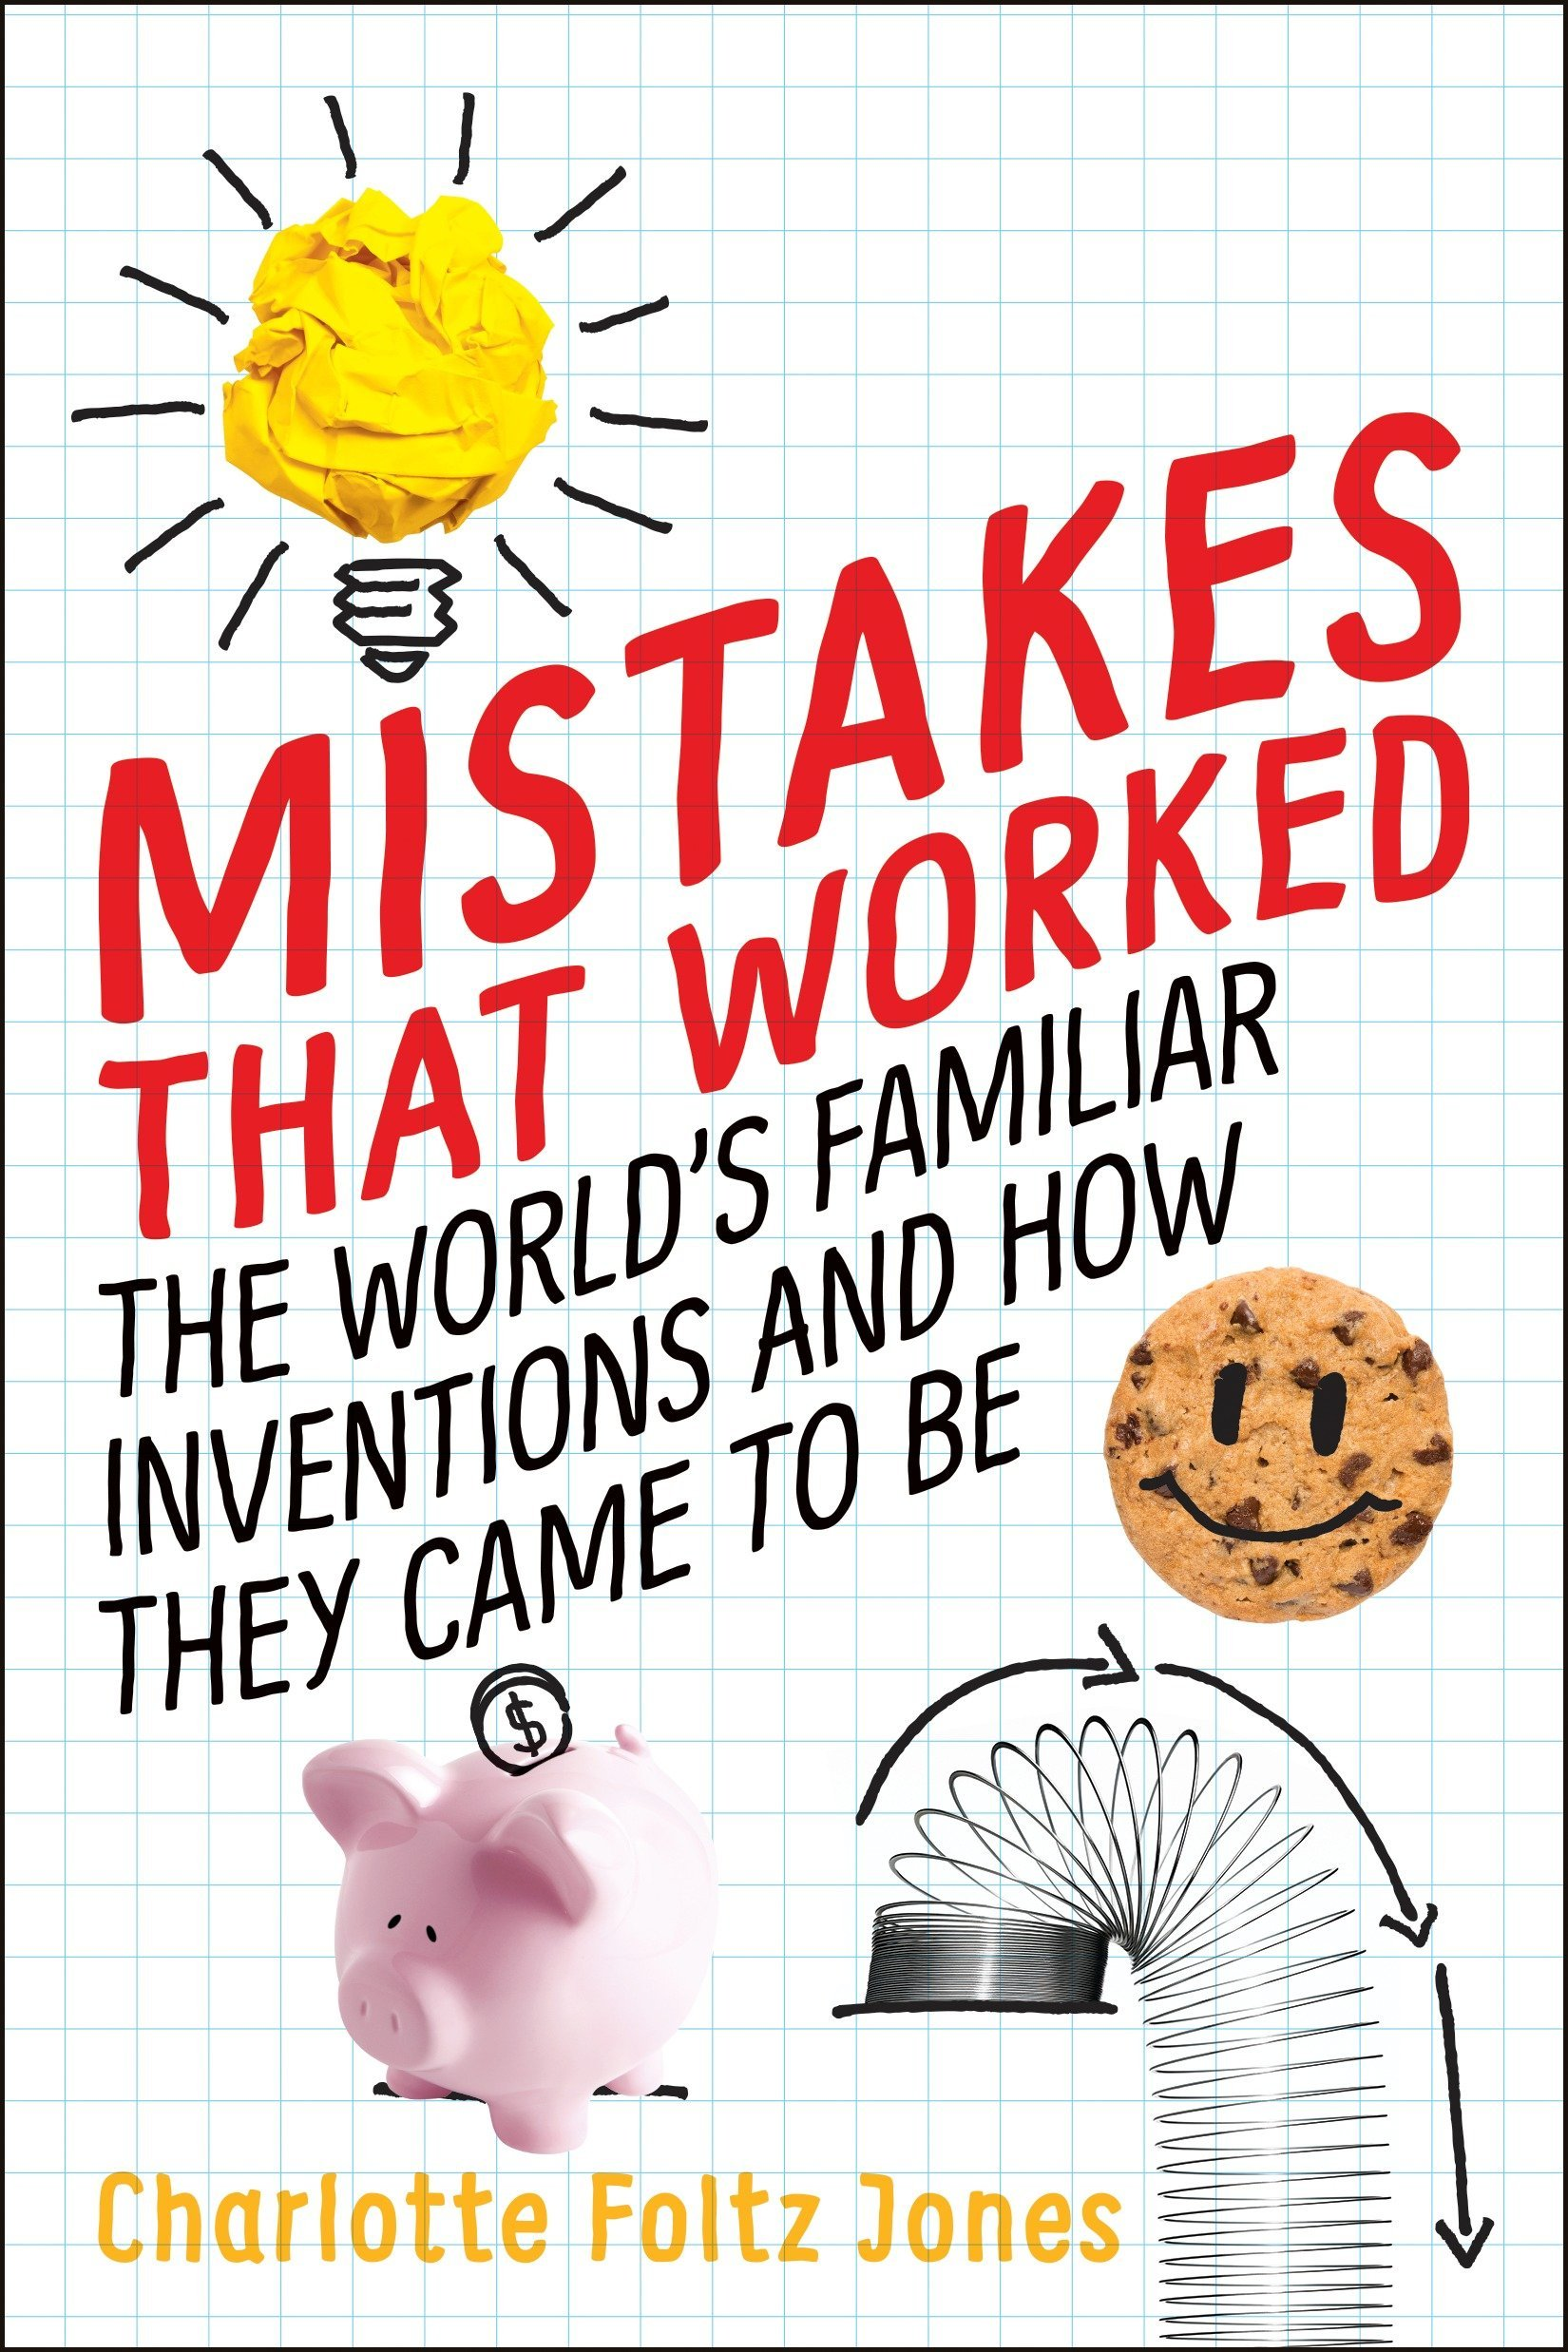 Mistakes That Worked: The World's Familiar Inventions and How They Came to Be